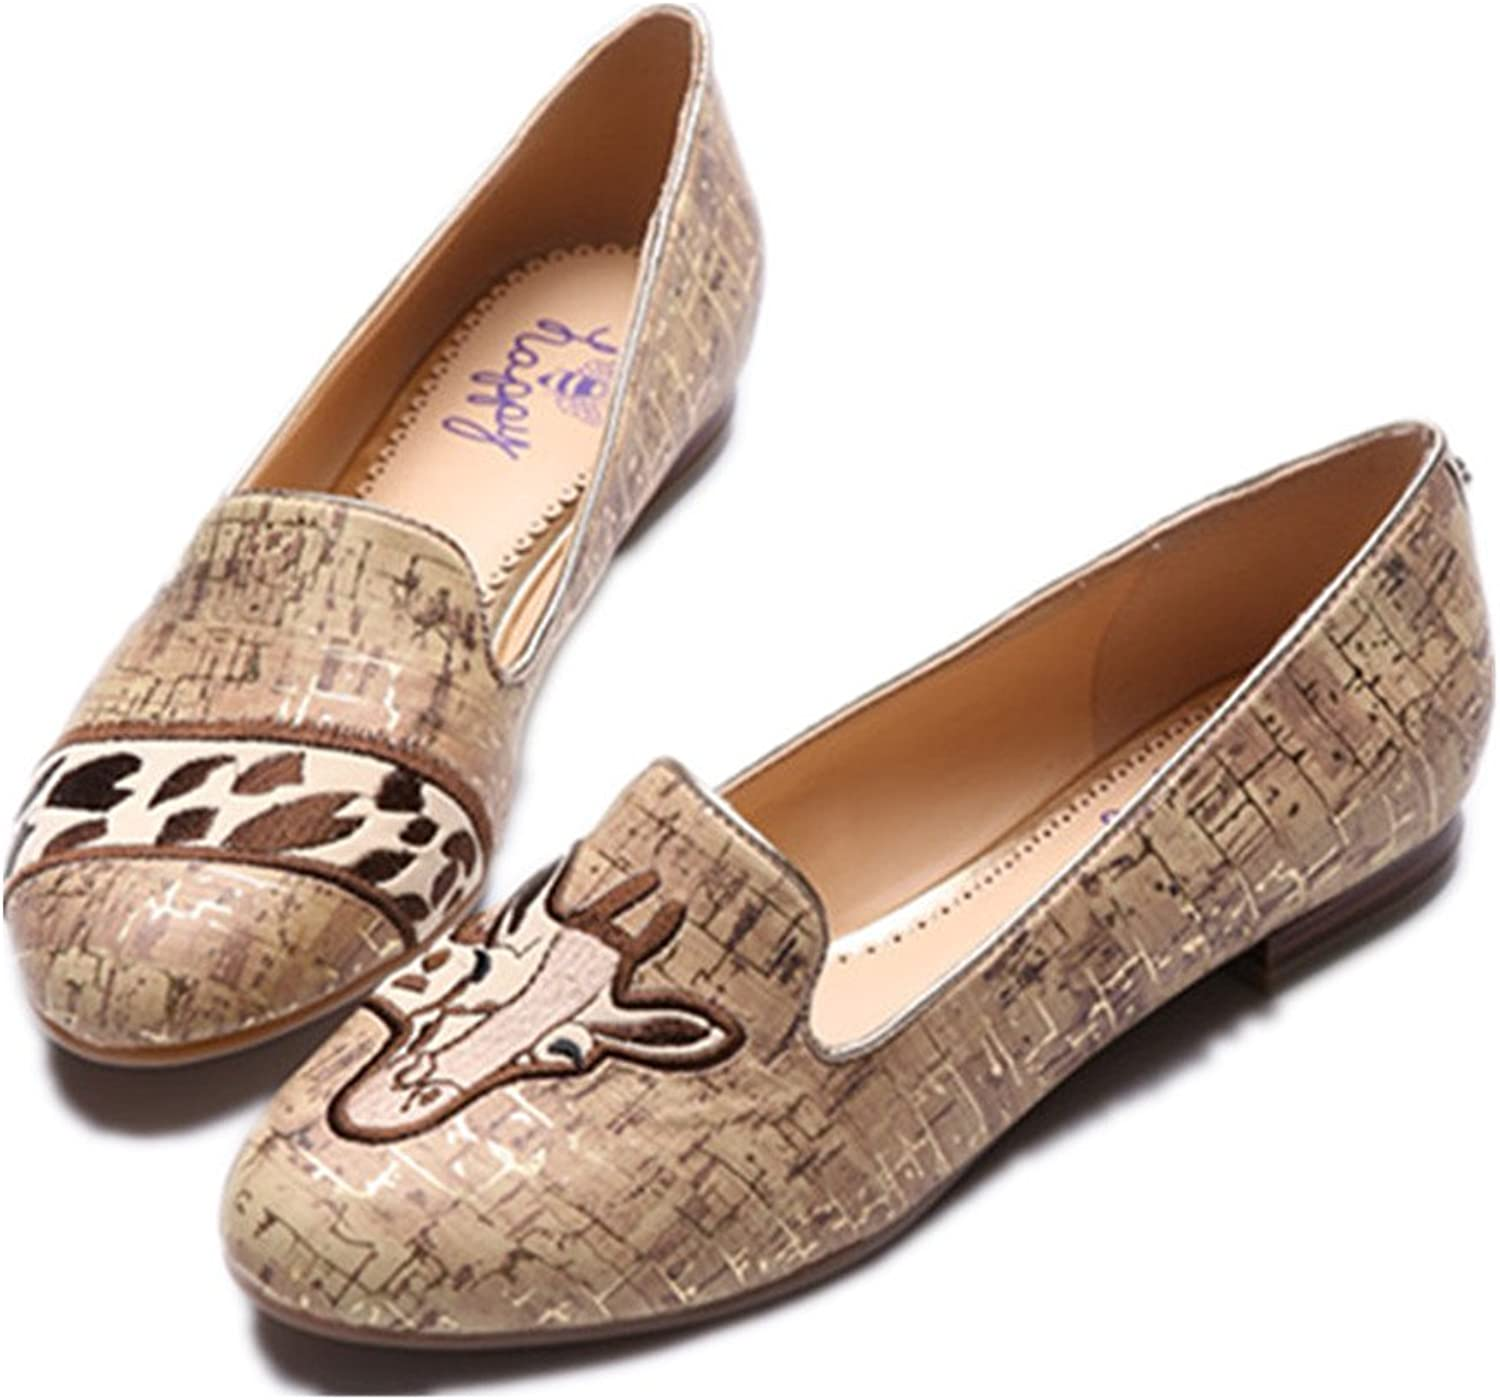 C. Wonder Time Womens Slip on Ballet Flats Loafers Espadrilles shoes Brown